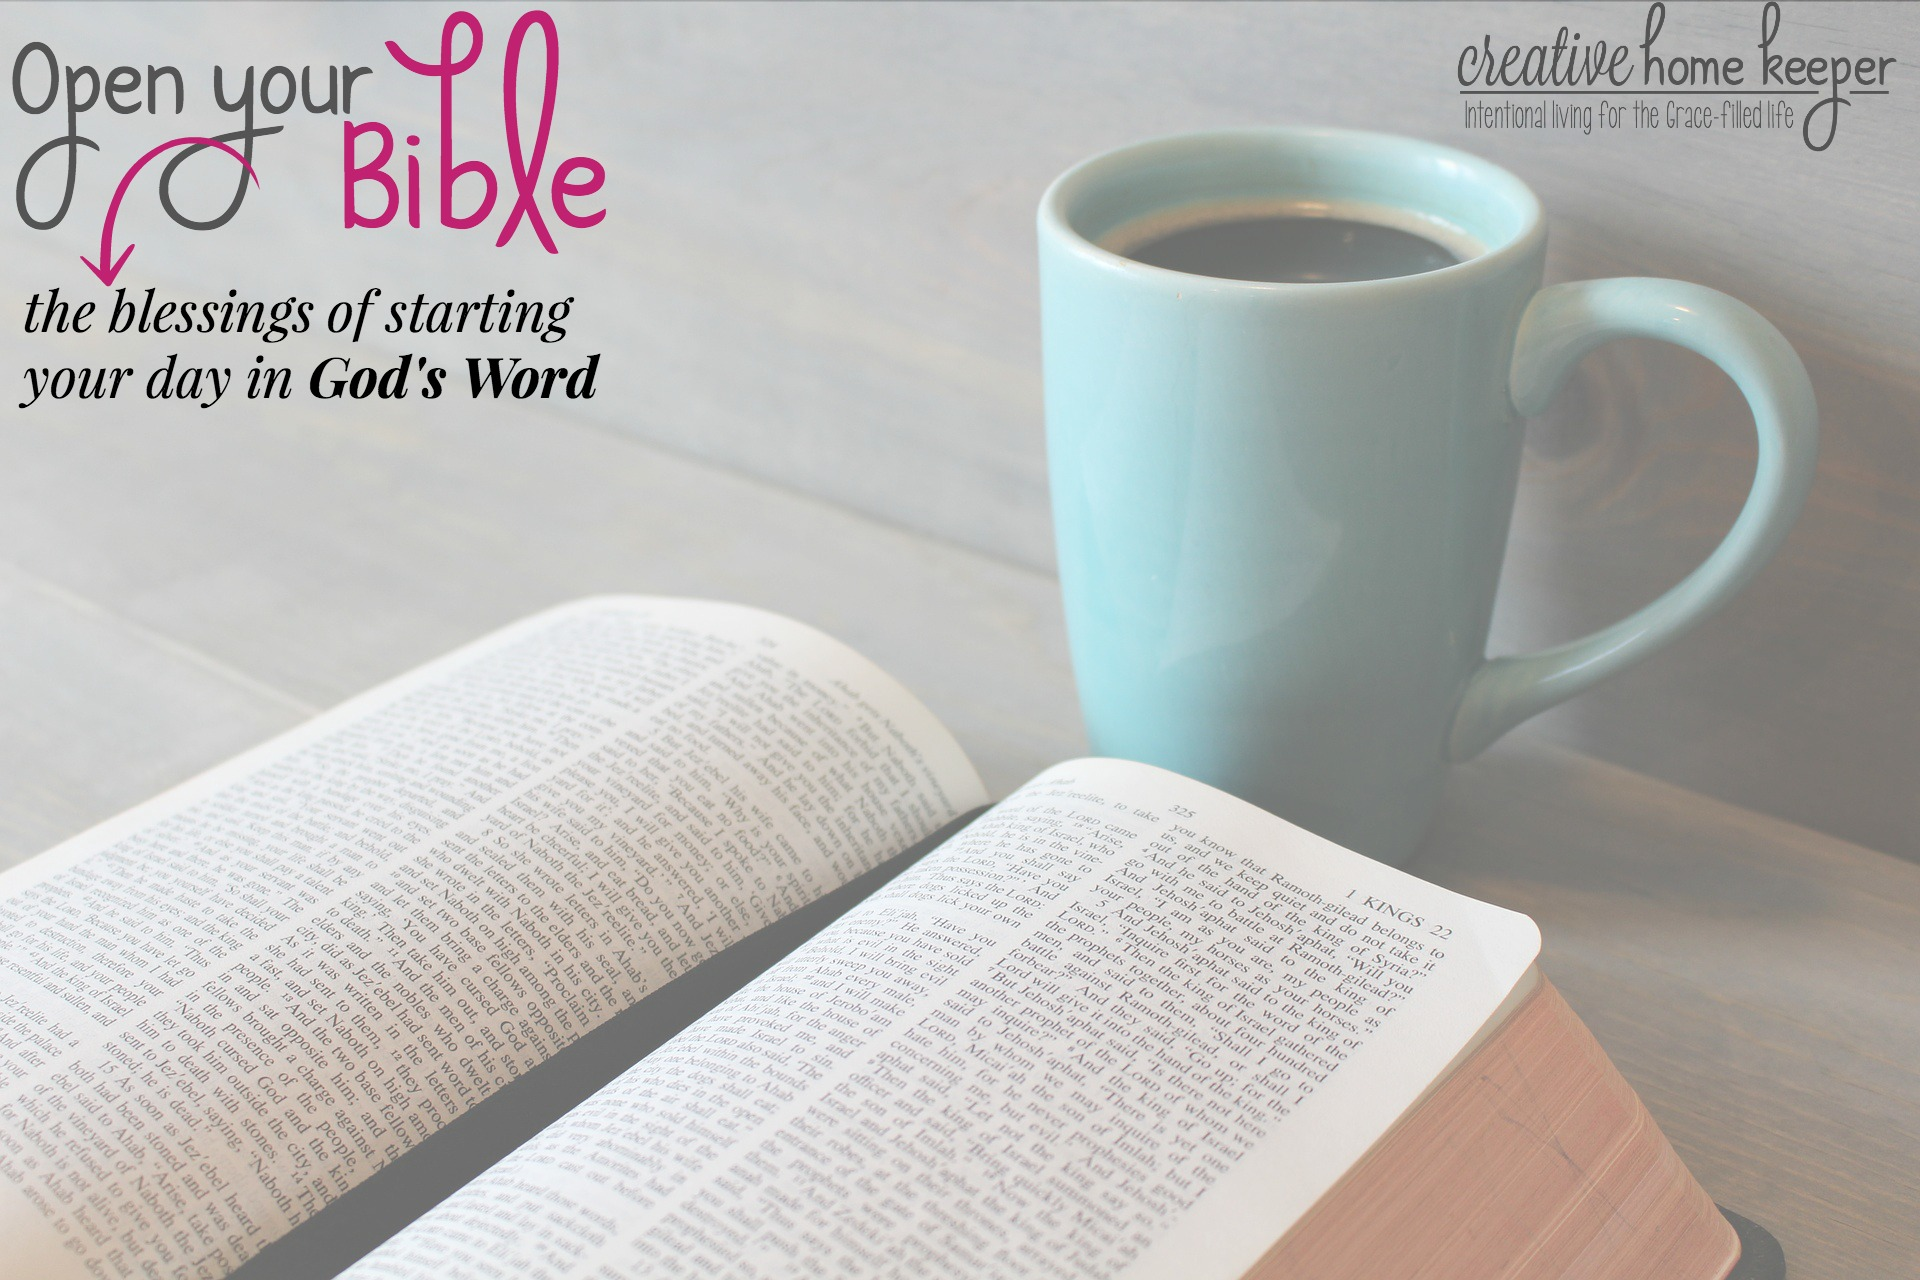 Open Your Bible: The Blessings of Starting Your Day in God's Word